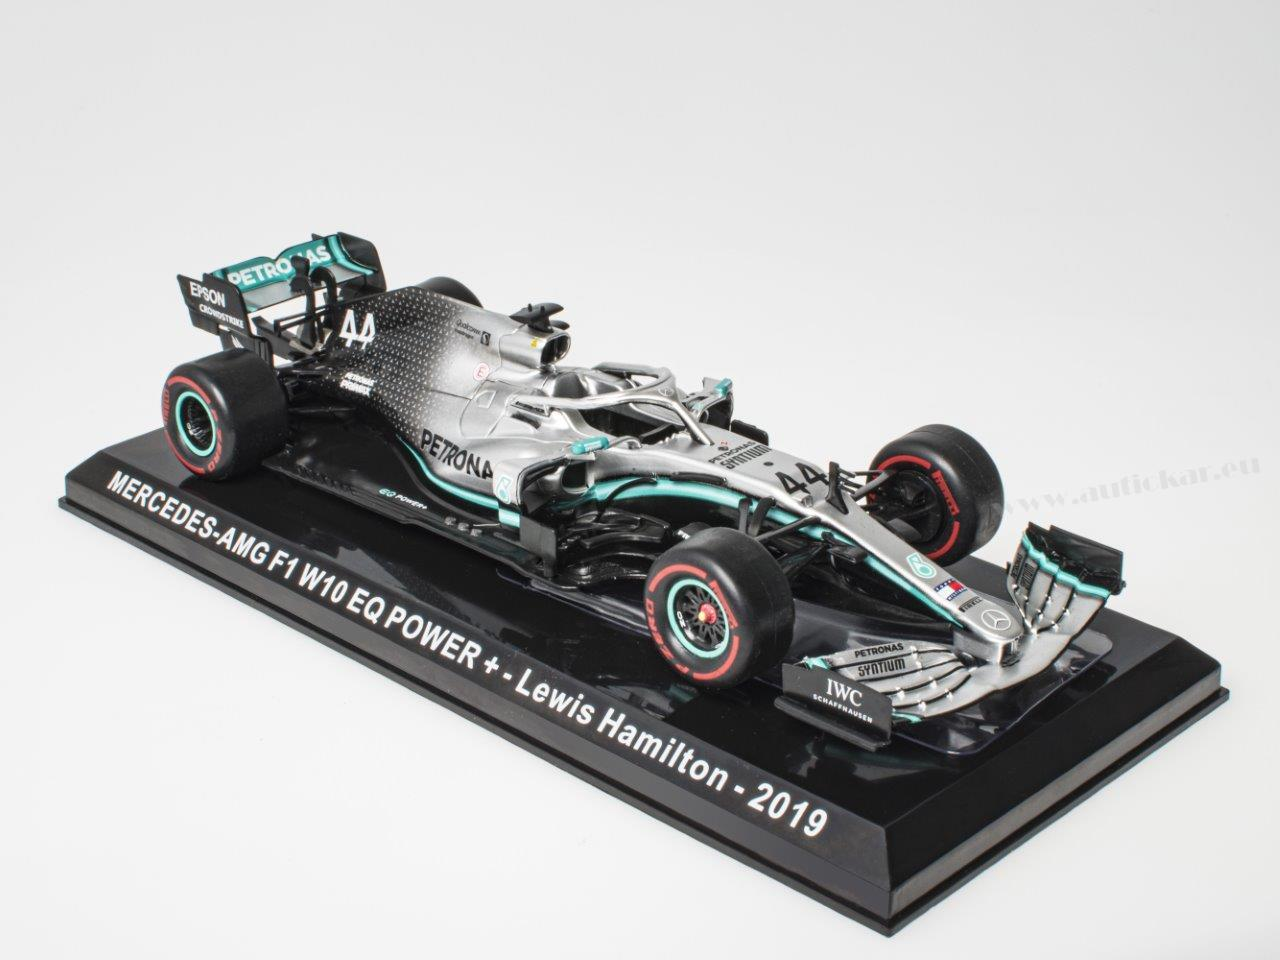 Mercedes AMG F1 W10 EQ Power Lewis Hamilton 2019 1:24